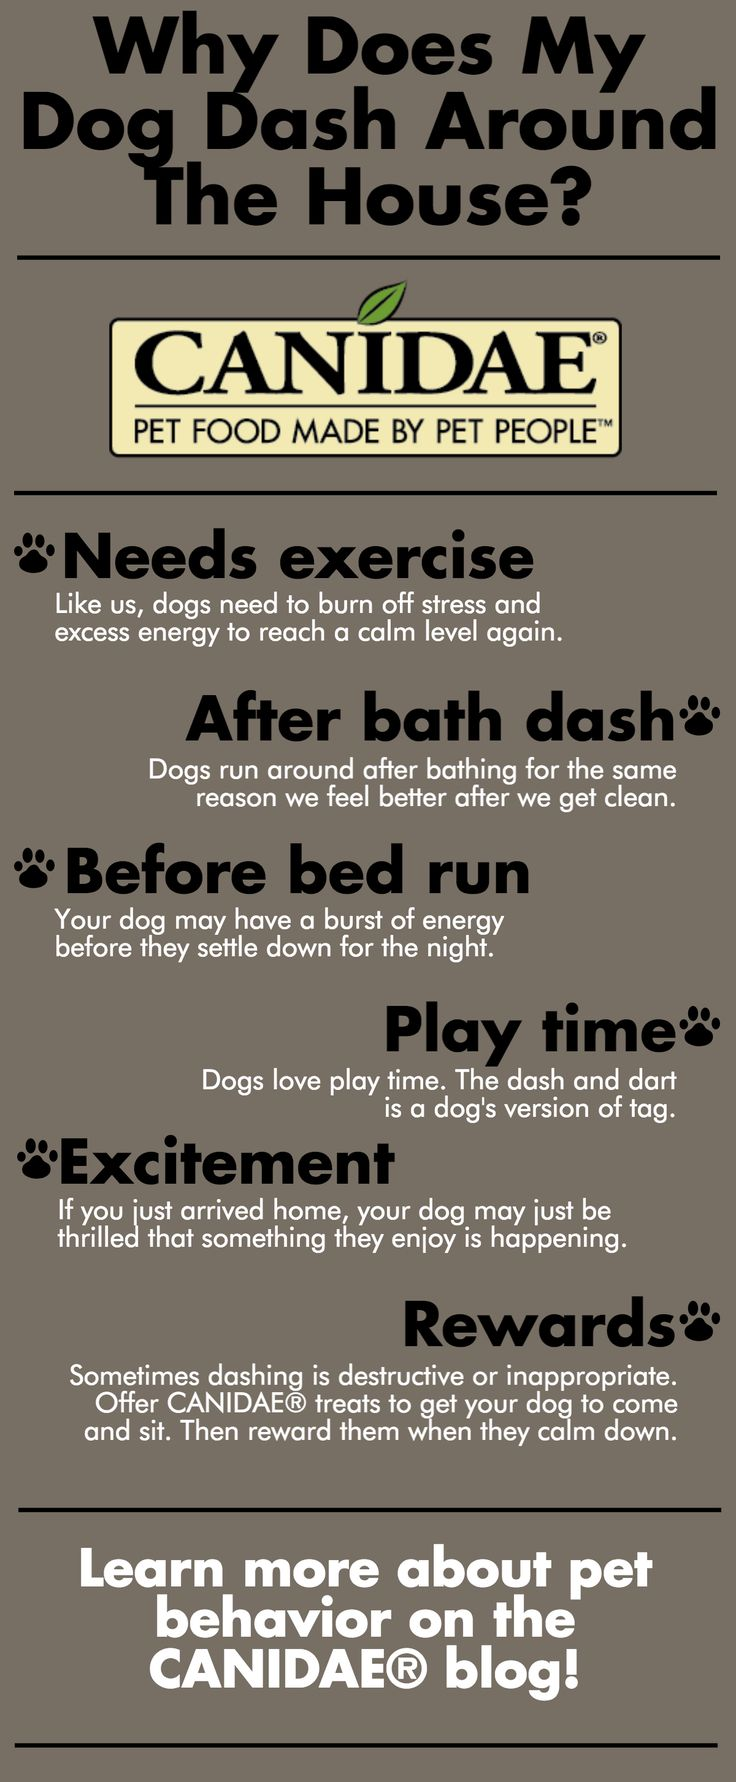 Why Does My Dog Dash Around The House? | CANIDAE® Blog